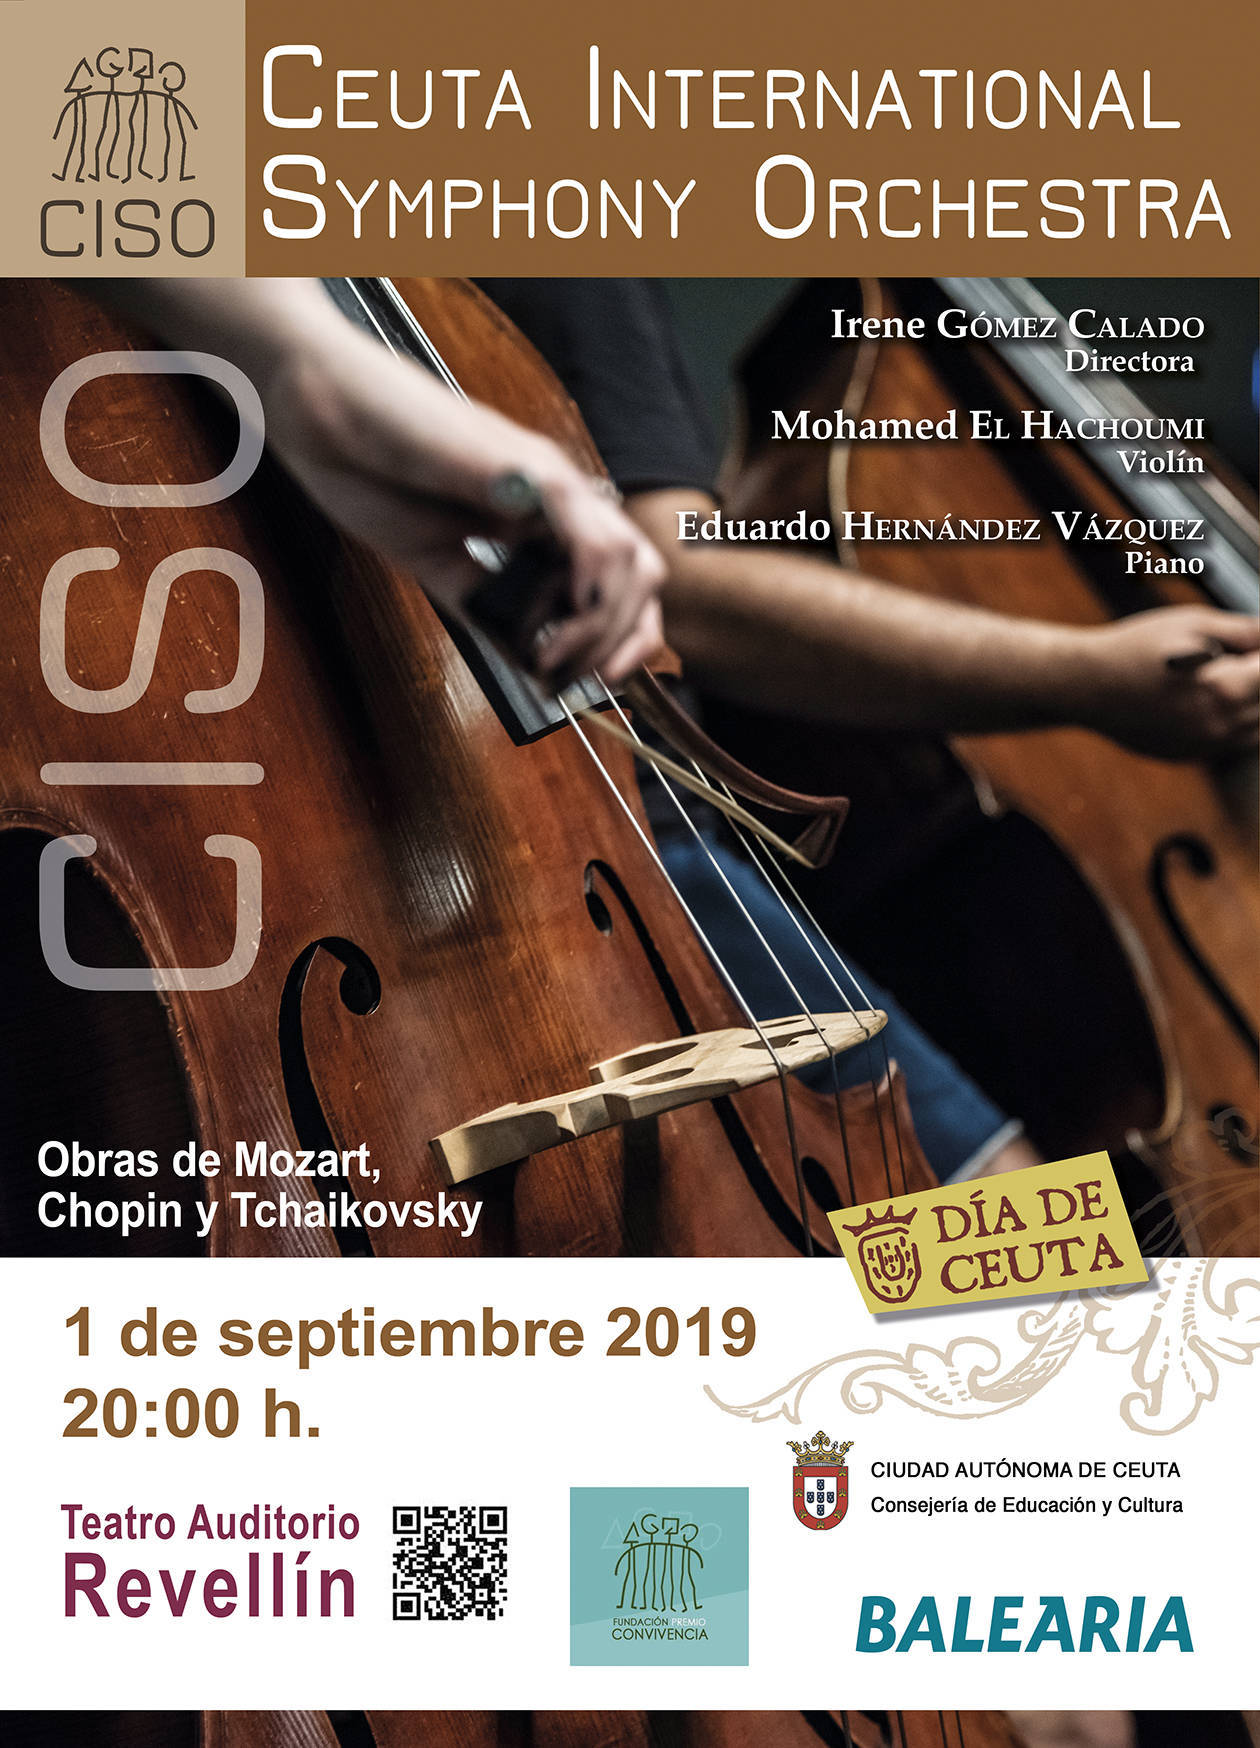 Ceuta International Symphony Orchestra 2019